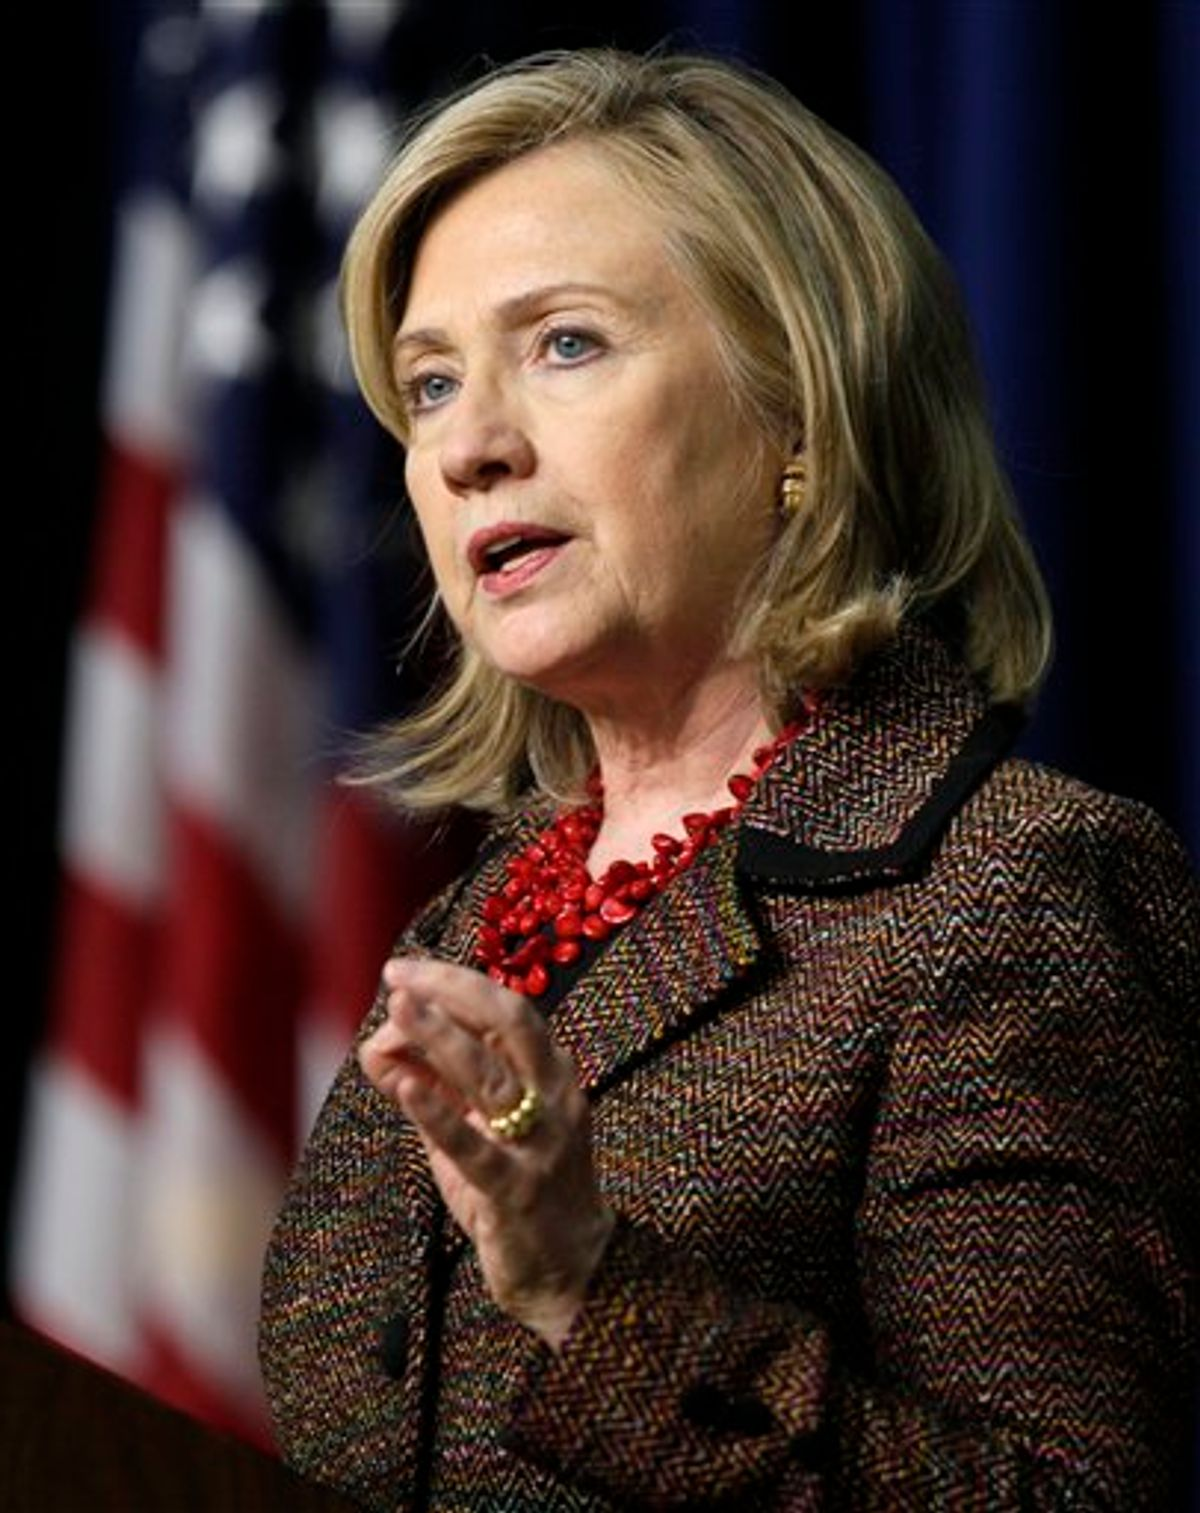 Secretary of State Hillary Rodham Clinton speaks at an International Strategy for Cyberspace event  in the South Court Auditorium of the Eisenhower Executive Office Building, Monday, May 16, 2011.  (AP Photo/Carolyn Kaster)  (AP)